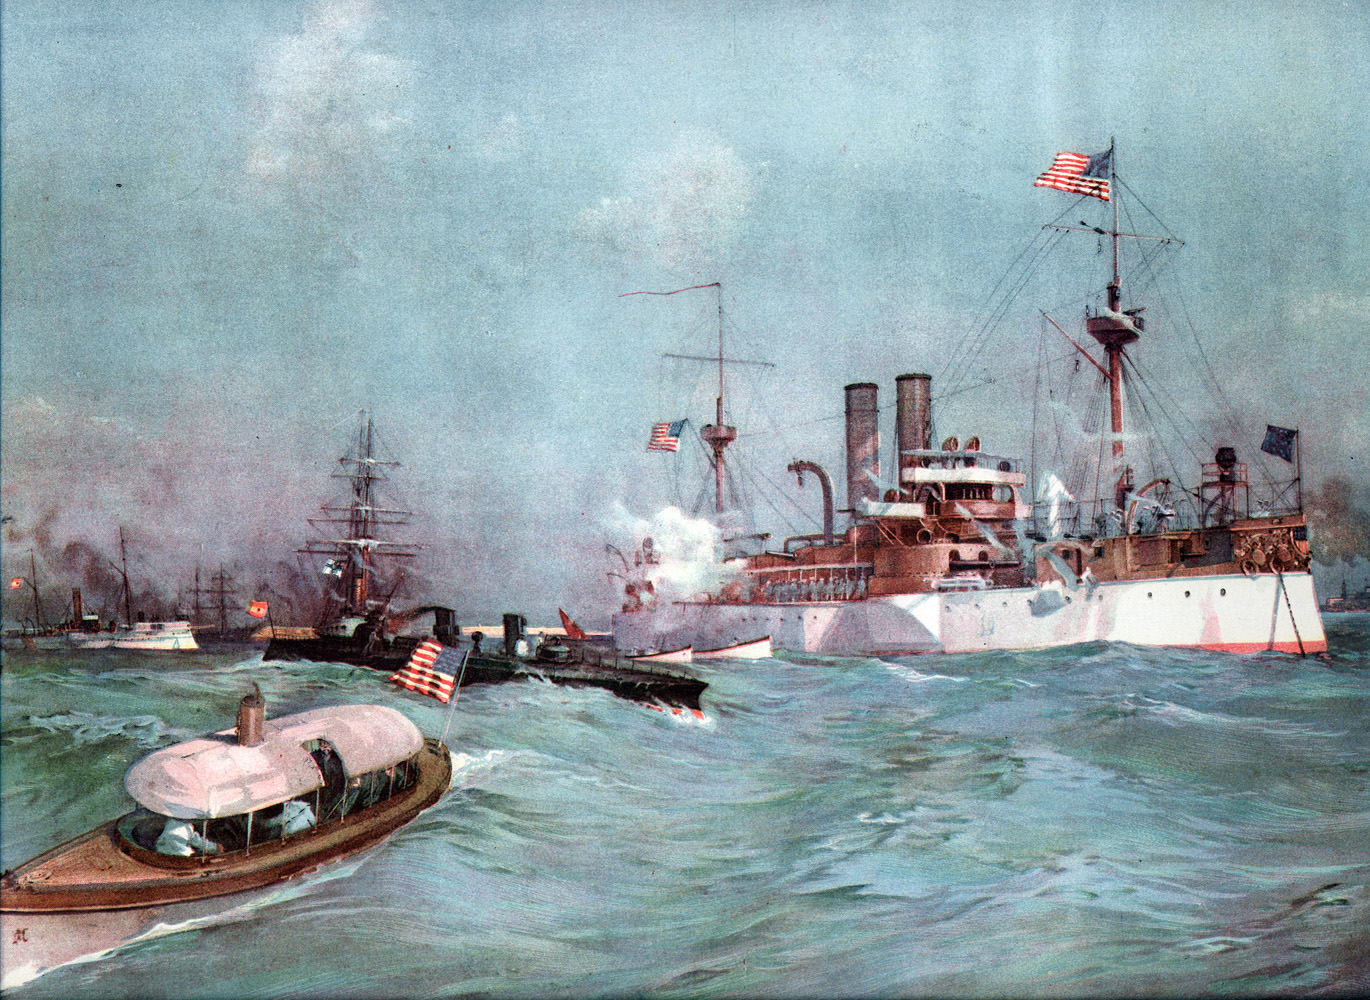 uss maine explosion The uss maine was a second-class battleship commissioned in 1895 that was part of the new us navy fleet of steel ships it exploded in havana.